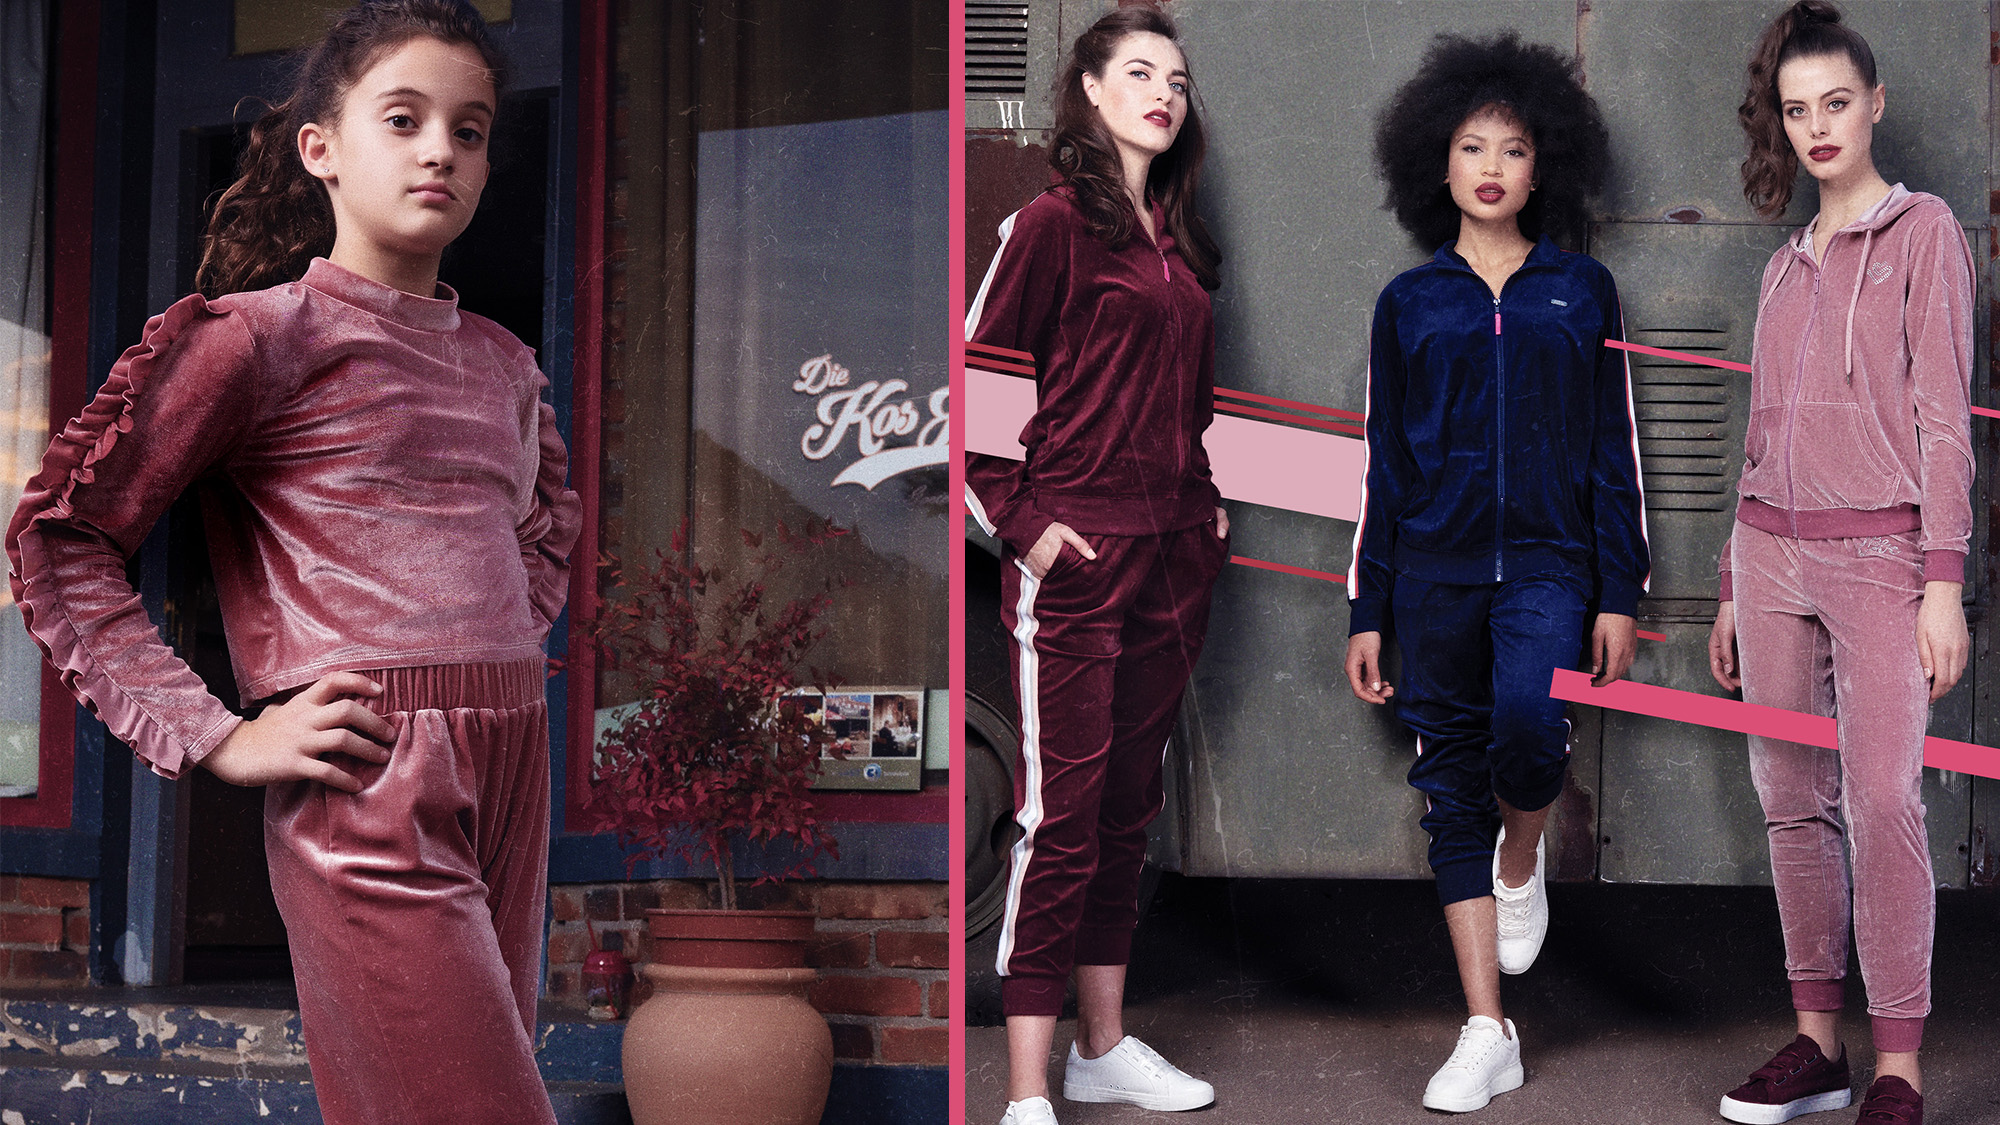 Velour Tracksuit worn by a girl and an adult woman